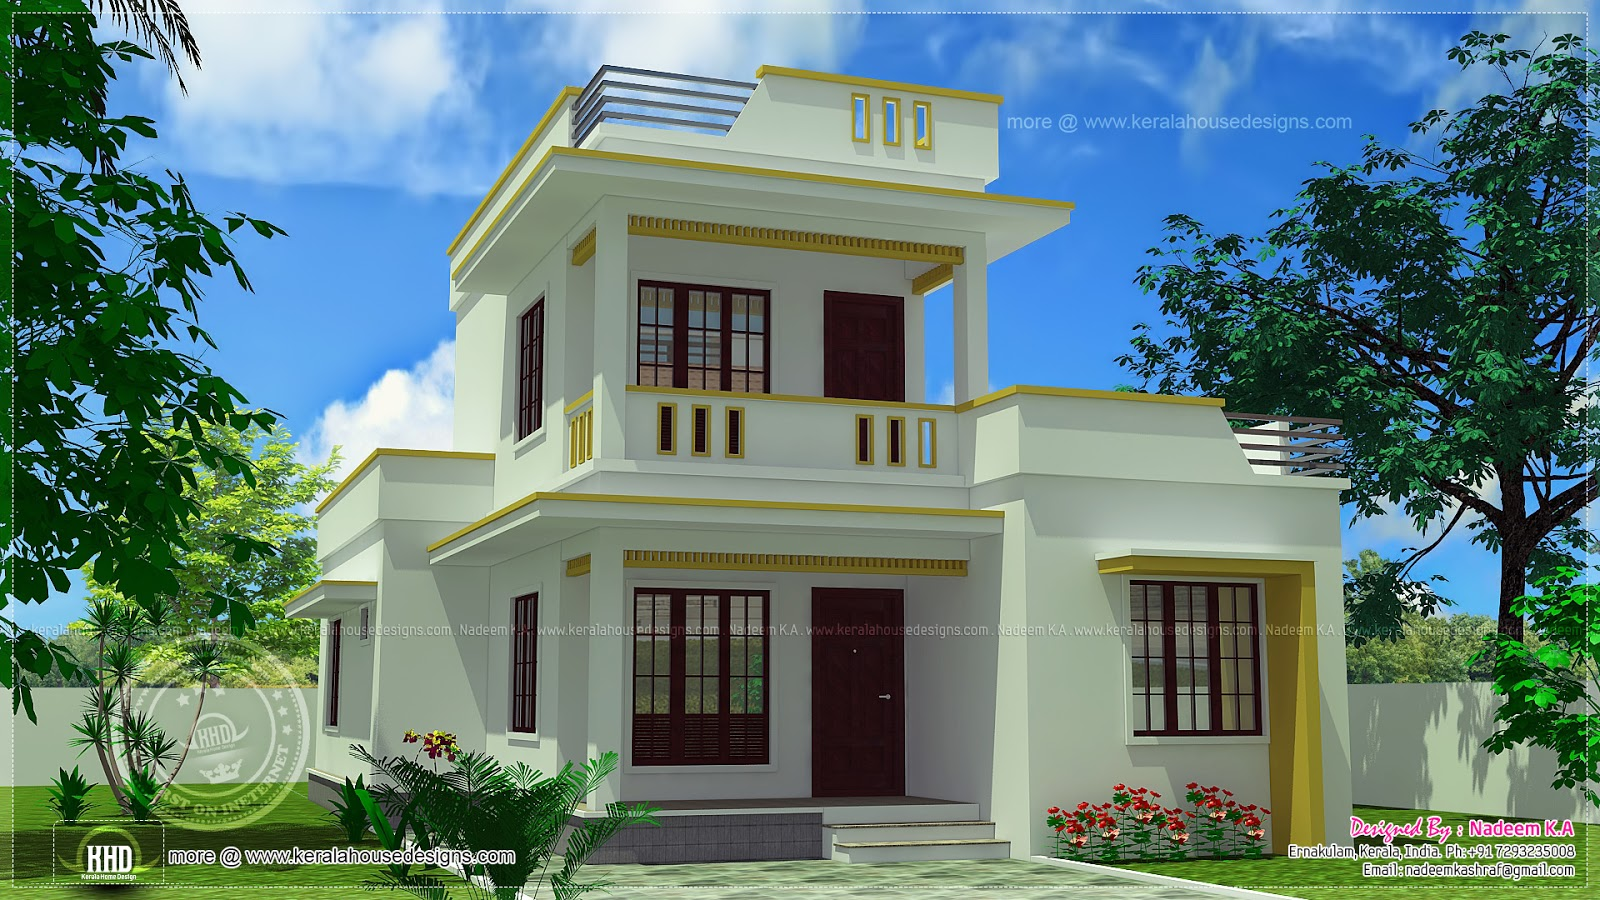 August 2013 kerala home design and floor plans for Pictures of house designs and floor plans